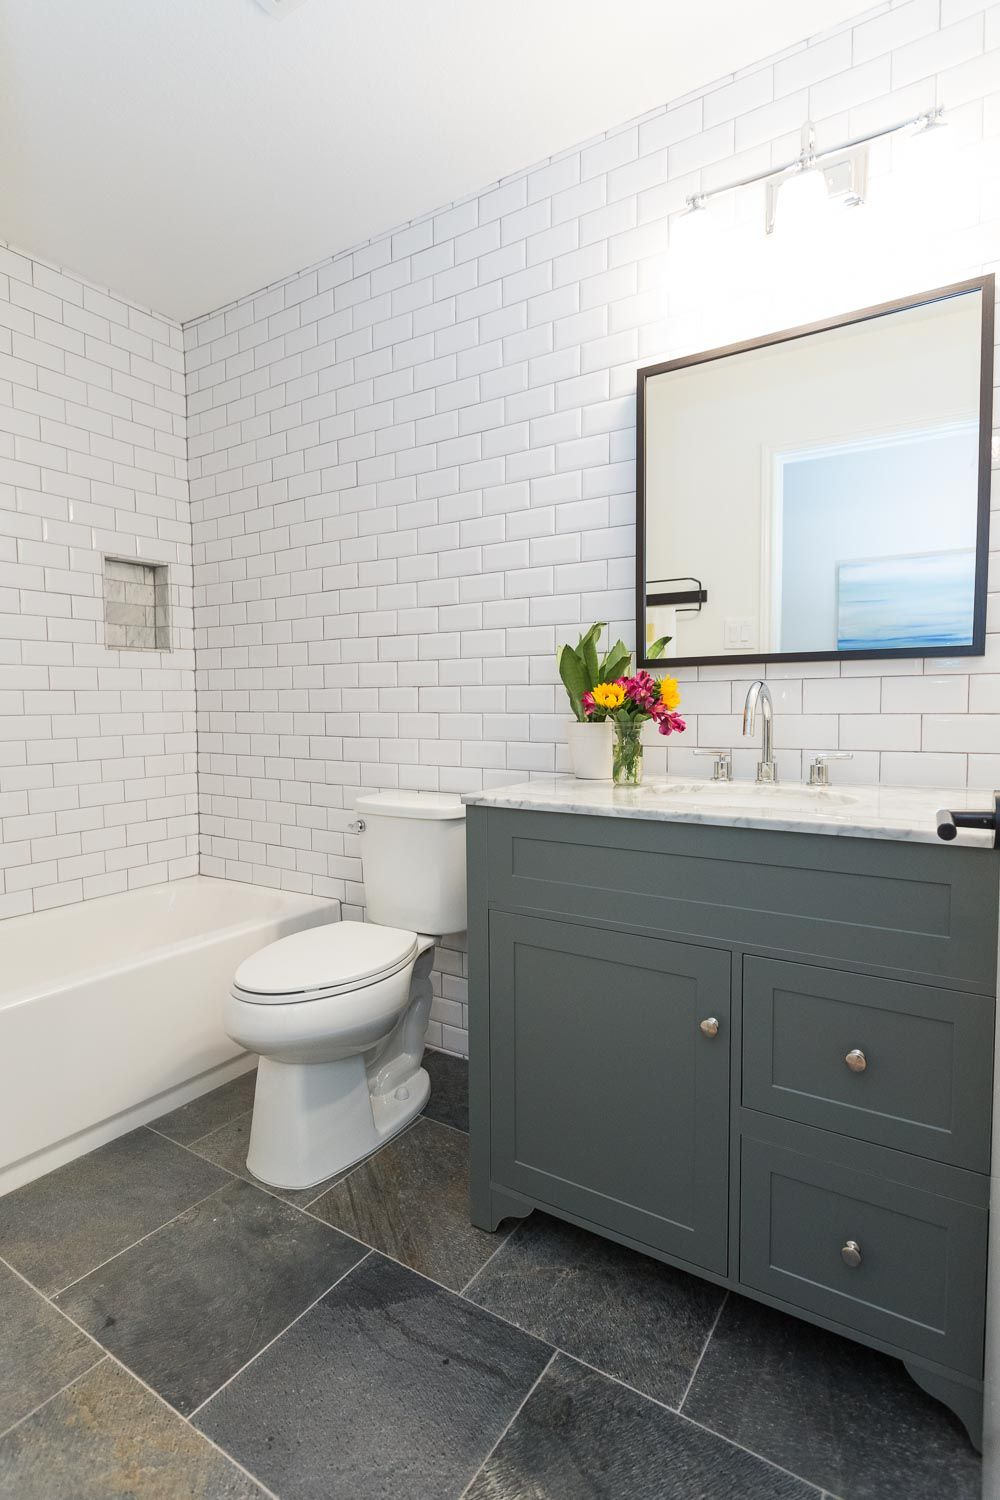 20 small bathroom remodel subway tile ideas small bathroom east austin modern farmhouse just completed